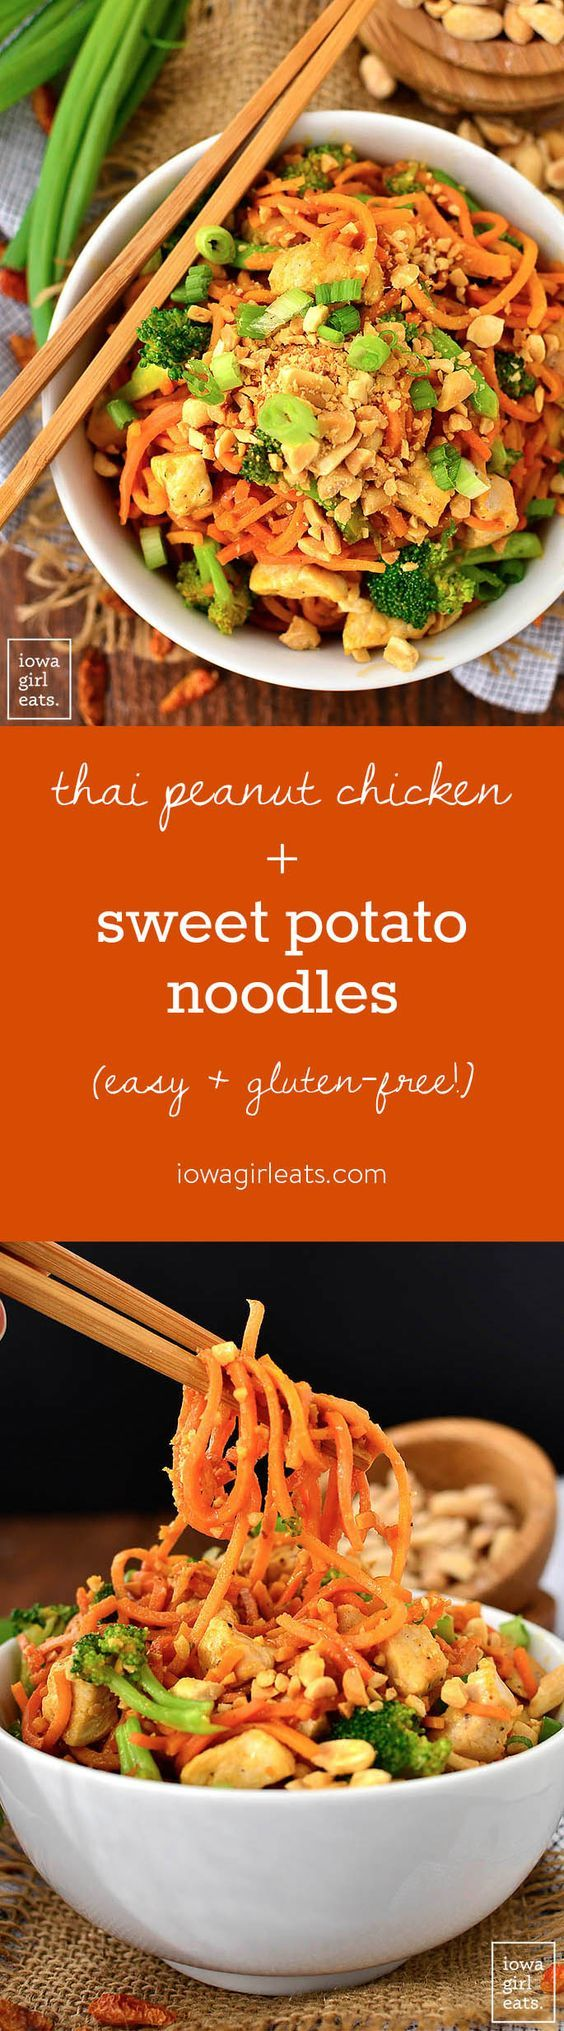 Thai Peanut Chicken and Sweet Potato Noodles are a healthy and gluten-free twist on your favorite Thai takeout order. Easy, colorful, and delicious dinner recipe!